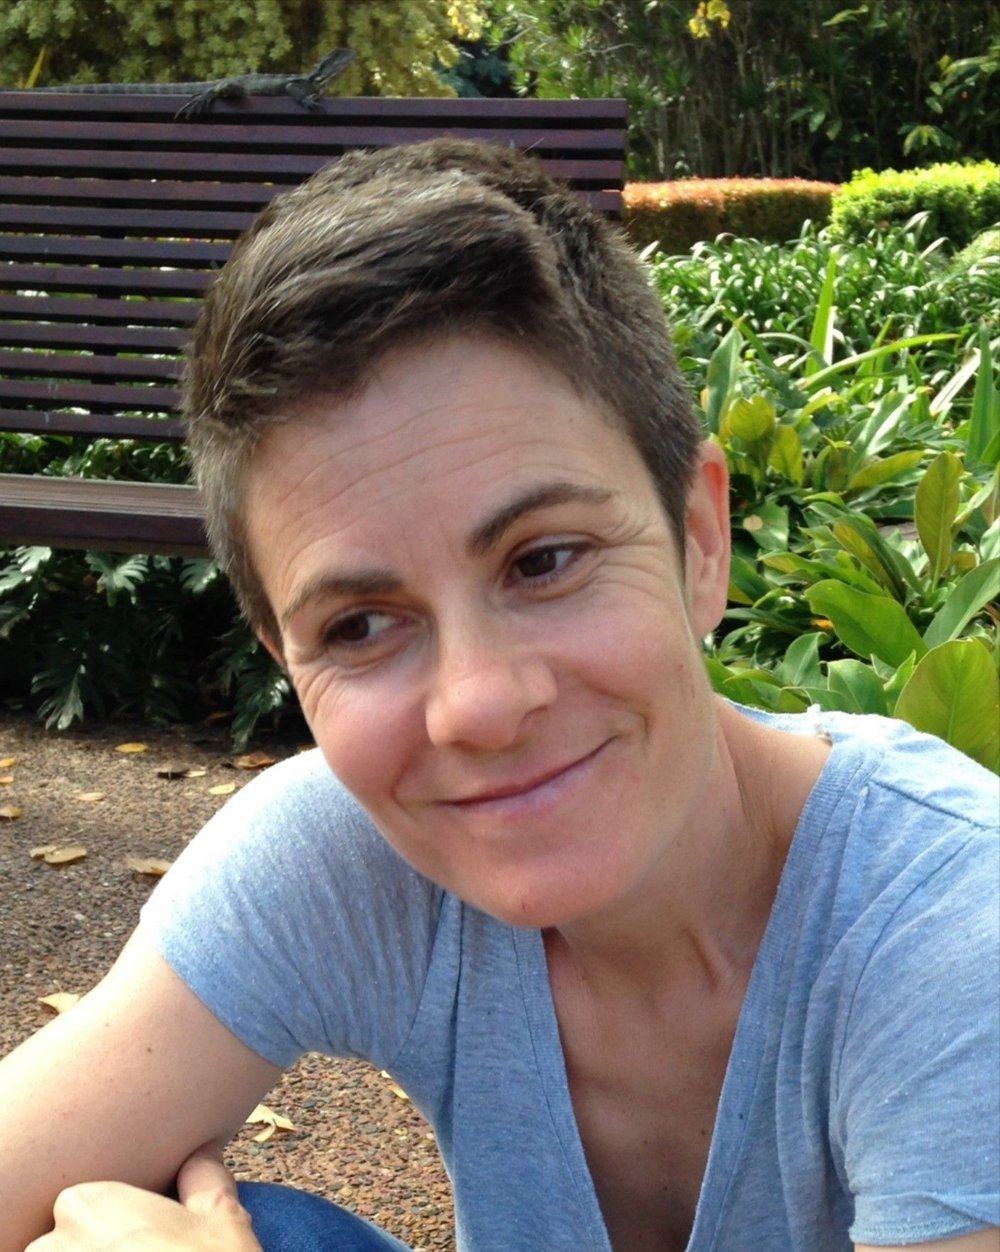 Dr Celine Frere - RESEARCH GROUP LEADERPhD (Evolutionary Biology), University of New South WalesBSc. Hons I, University of QueenslandEXPERTISE: GENETICS, GENOMICS, ANIMAL BEHAVIOURGoogle Scholar profile